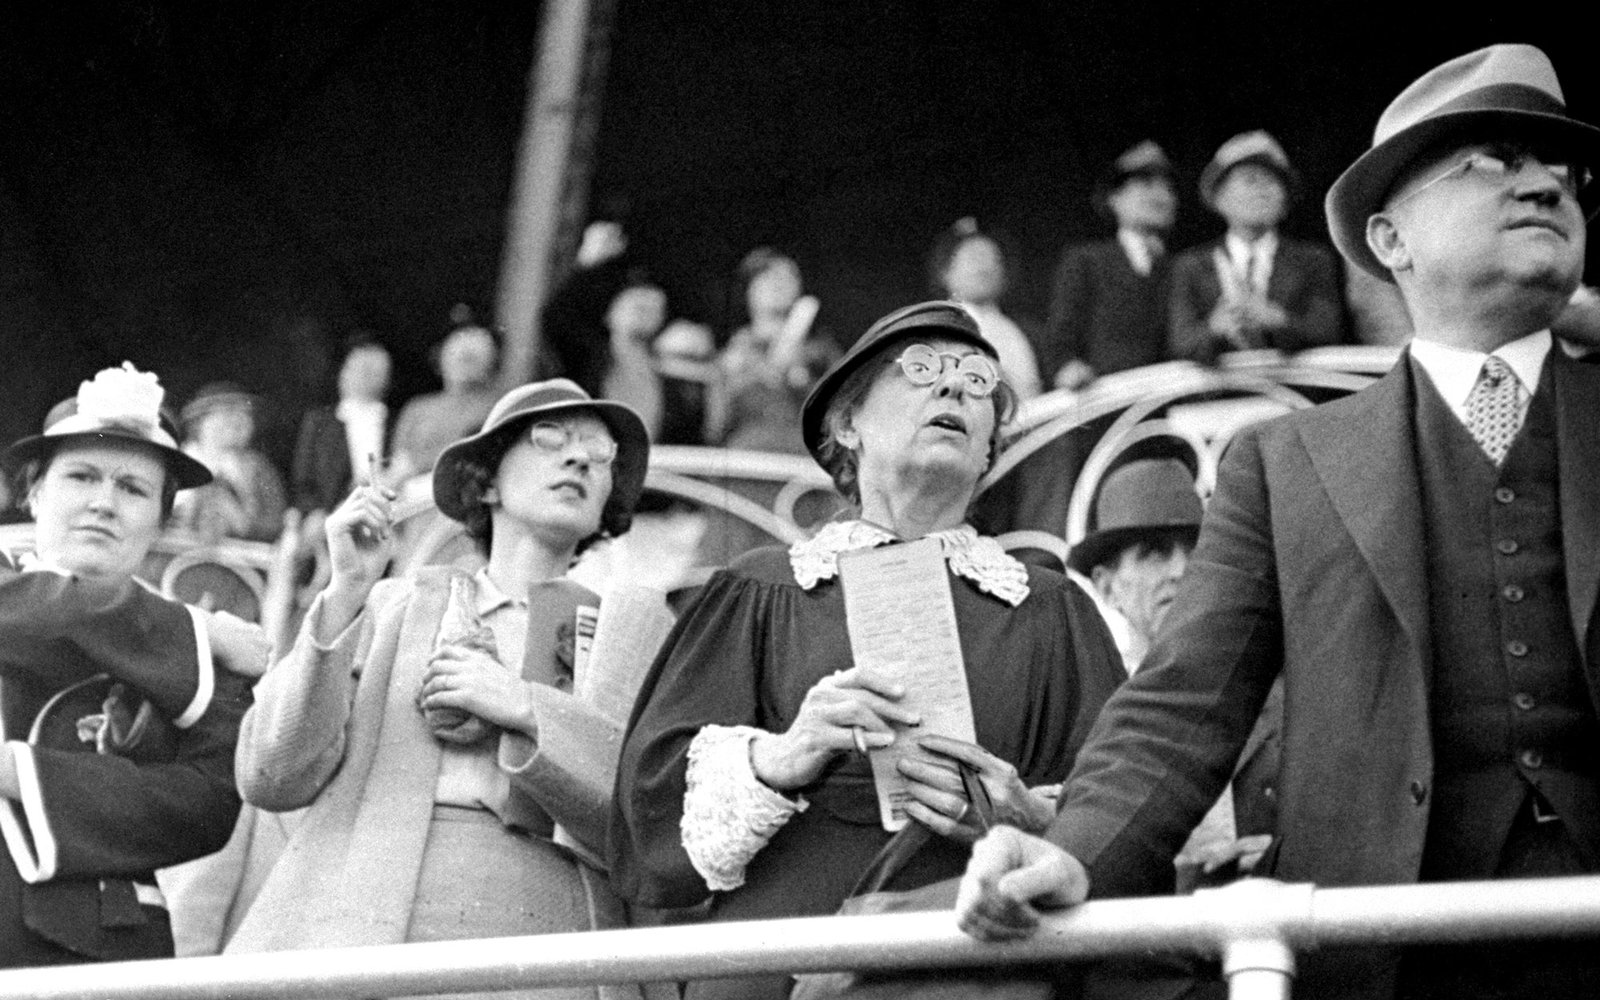 Kentucky Derby Spectators 1936